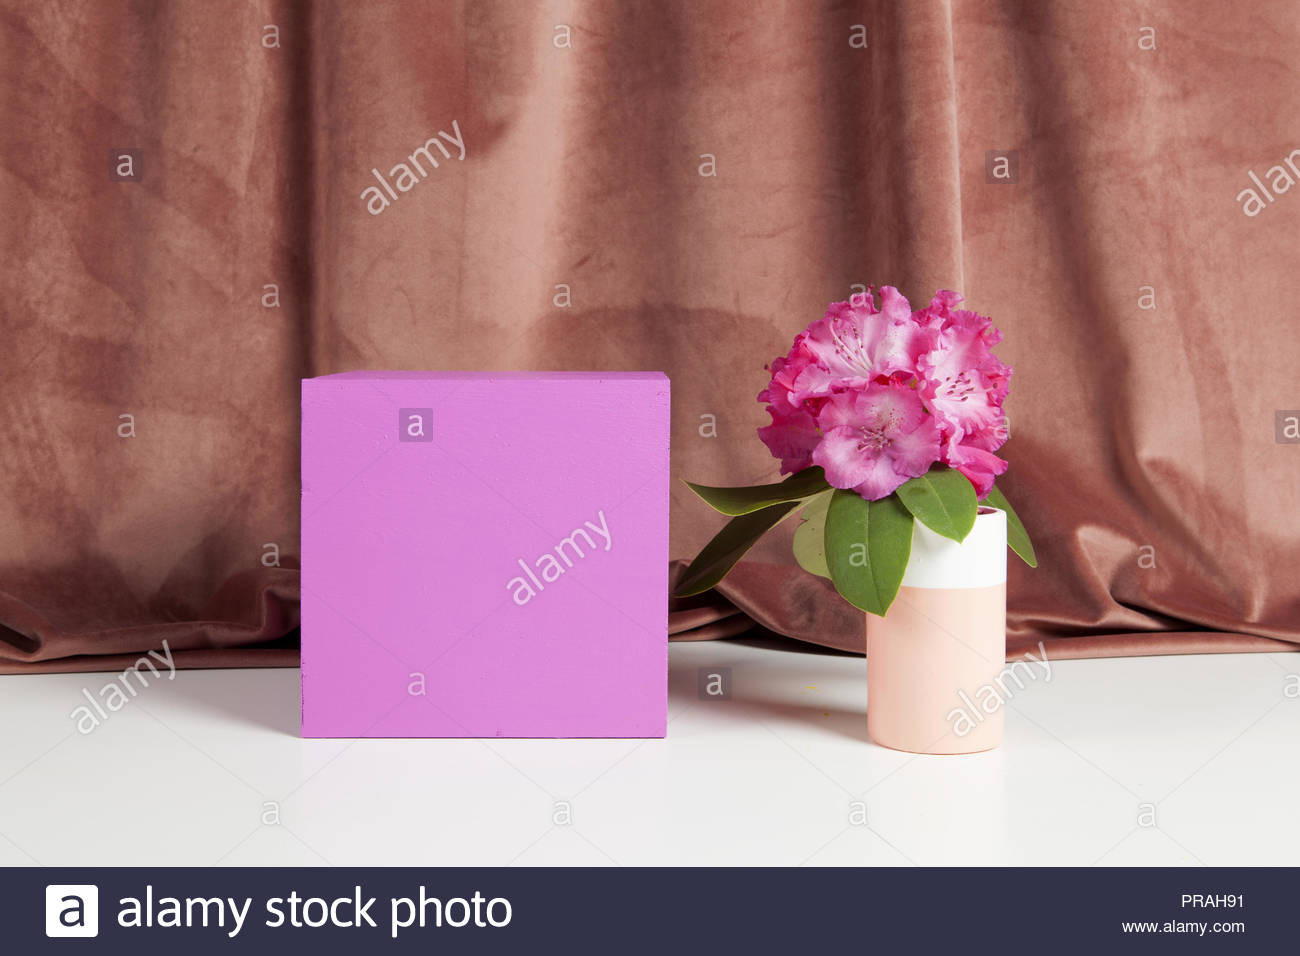 gladiolus vase of pedestal vase stock photos pedestal vase stock images page 2 alamy in bicolor vase with flowers pink rhododendron inside on a pink coloured cube minimal still life